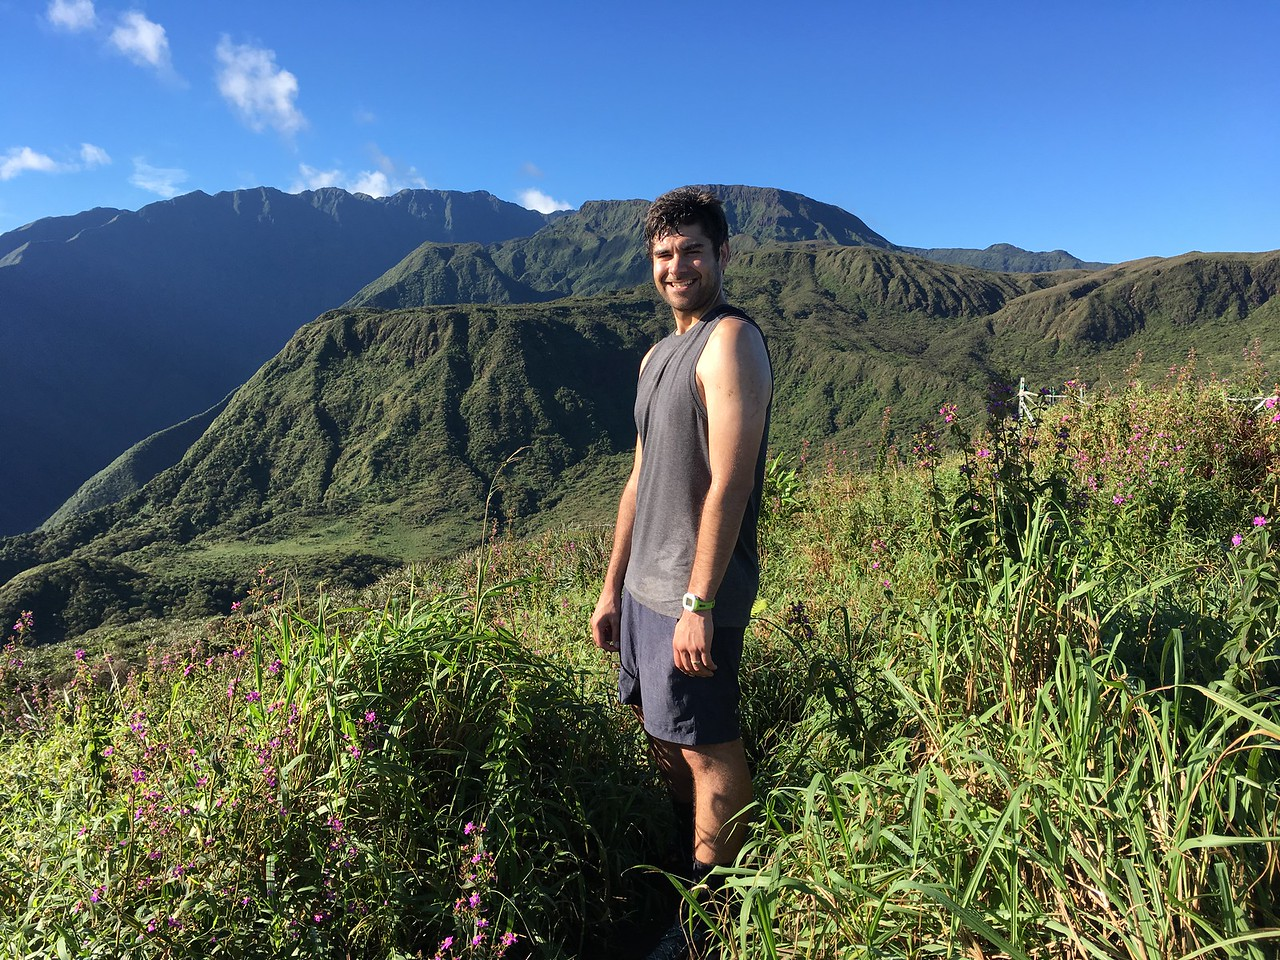 Waihee Ridge Trail run was muddy and steep at first, but worth the views